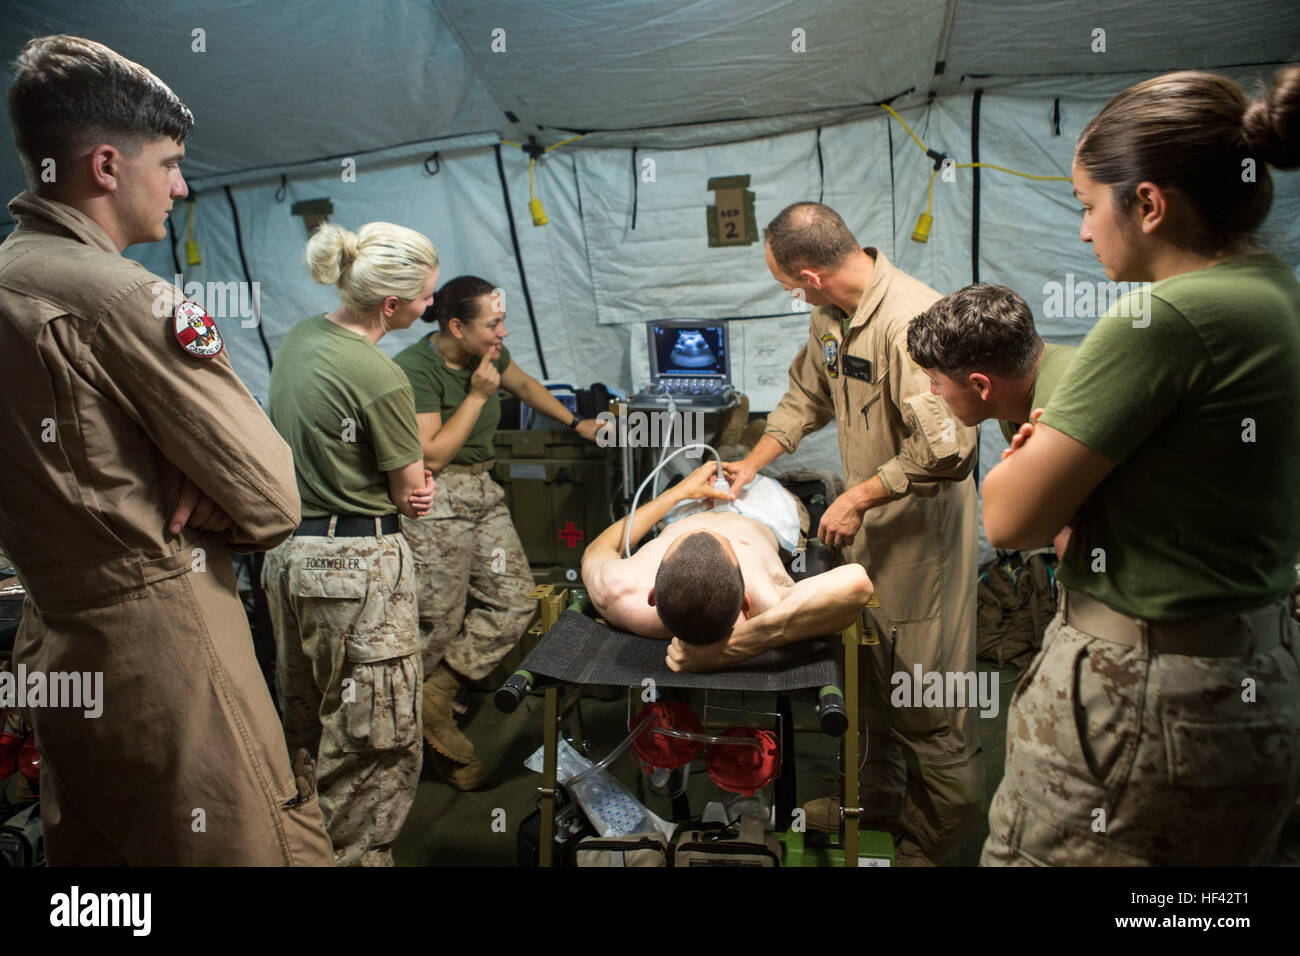 U.S. Navy Lt. Cmdr. Robert Oldt, an emergency physician and Lt. Oscar Kizhner, a flight surgeon, demonstrate proper Stock Photo